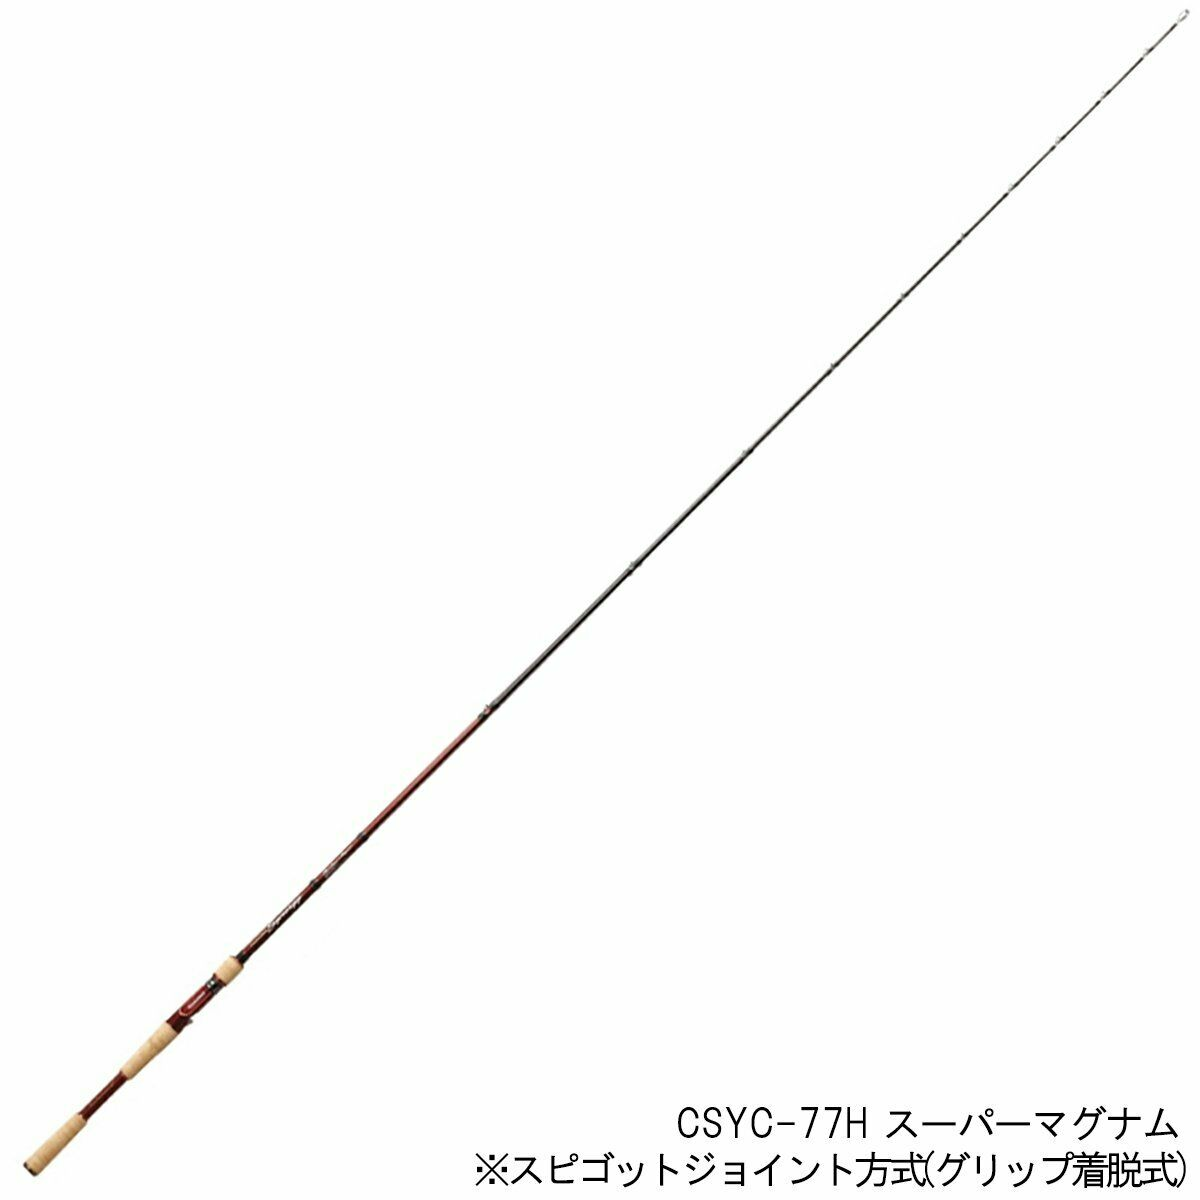 Eververde Bait Rod Synergy CSYC77H Super Magnum From Stylish anglers Japan